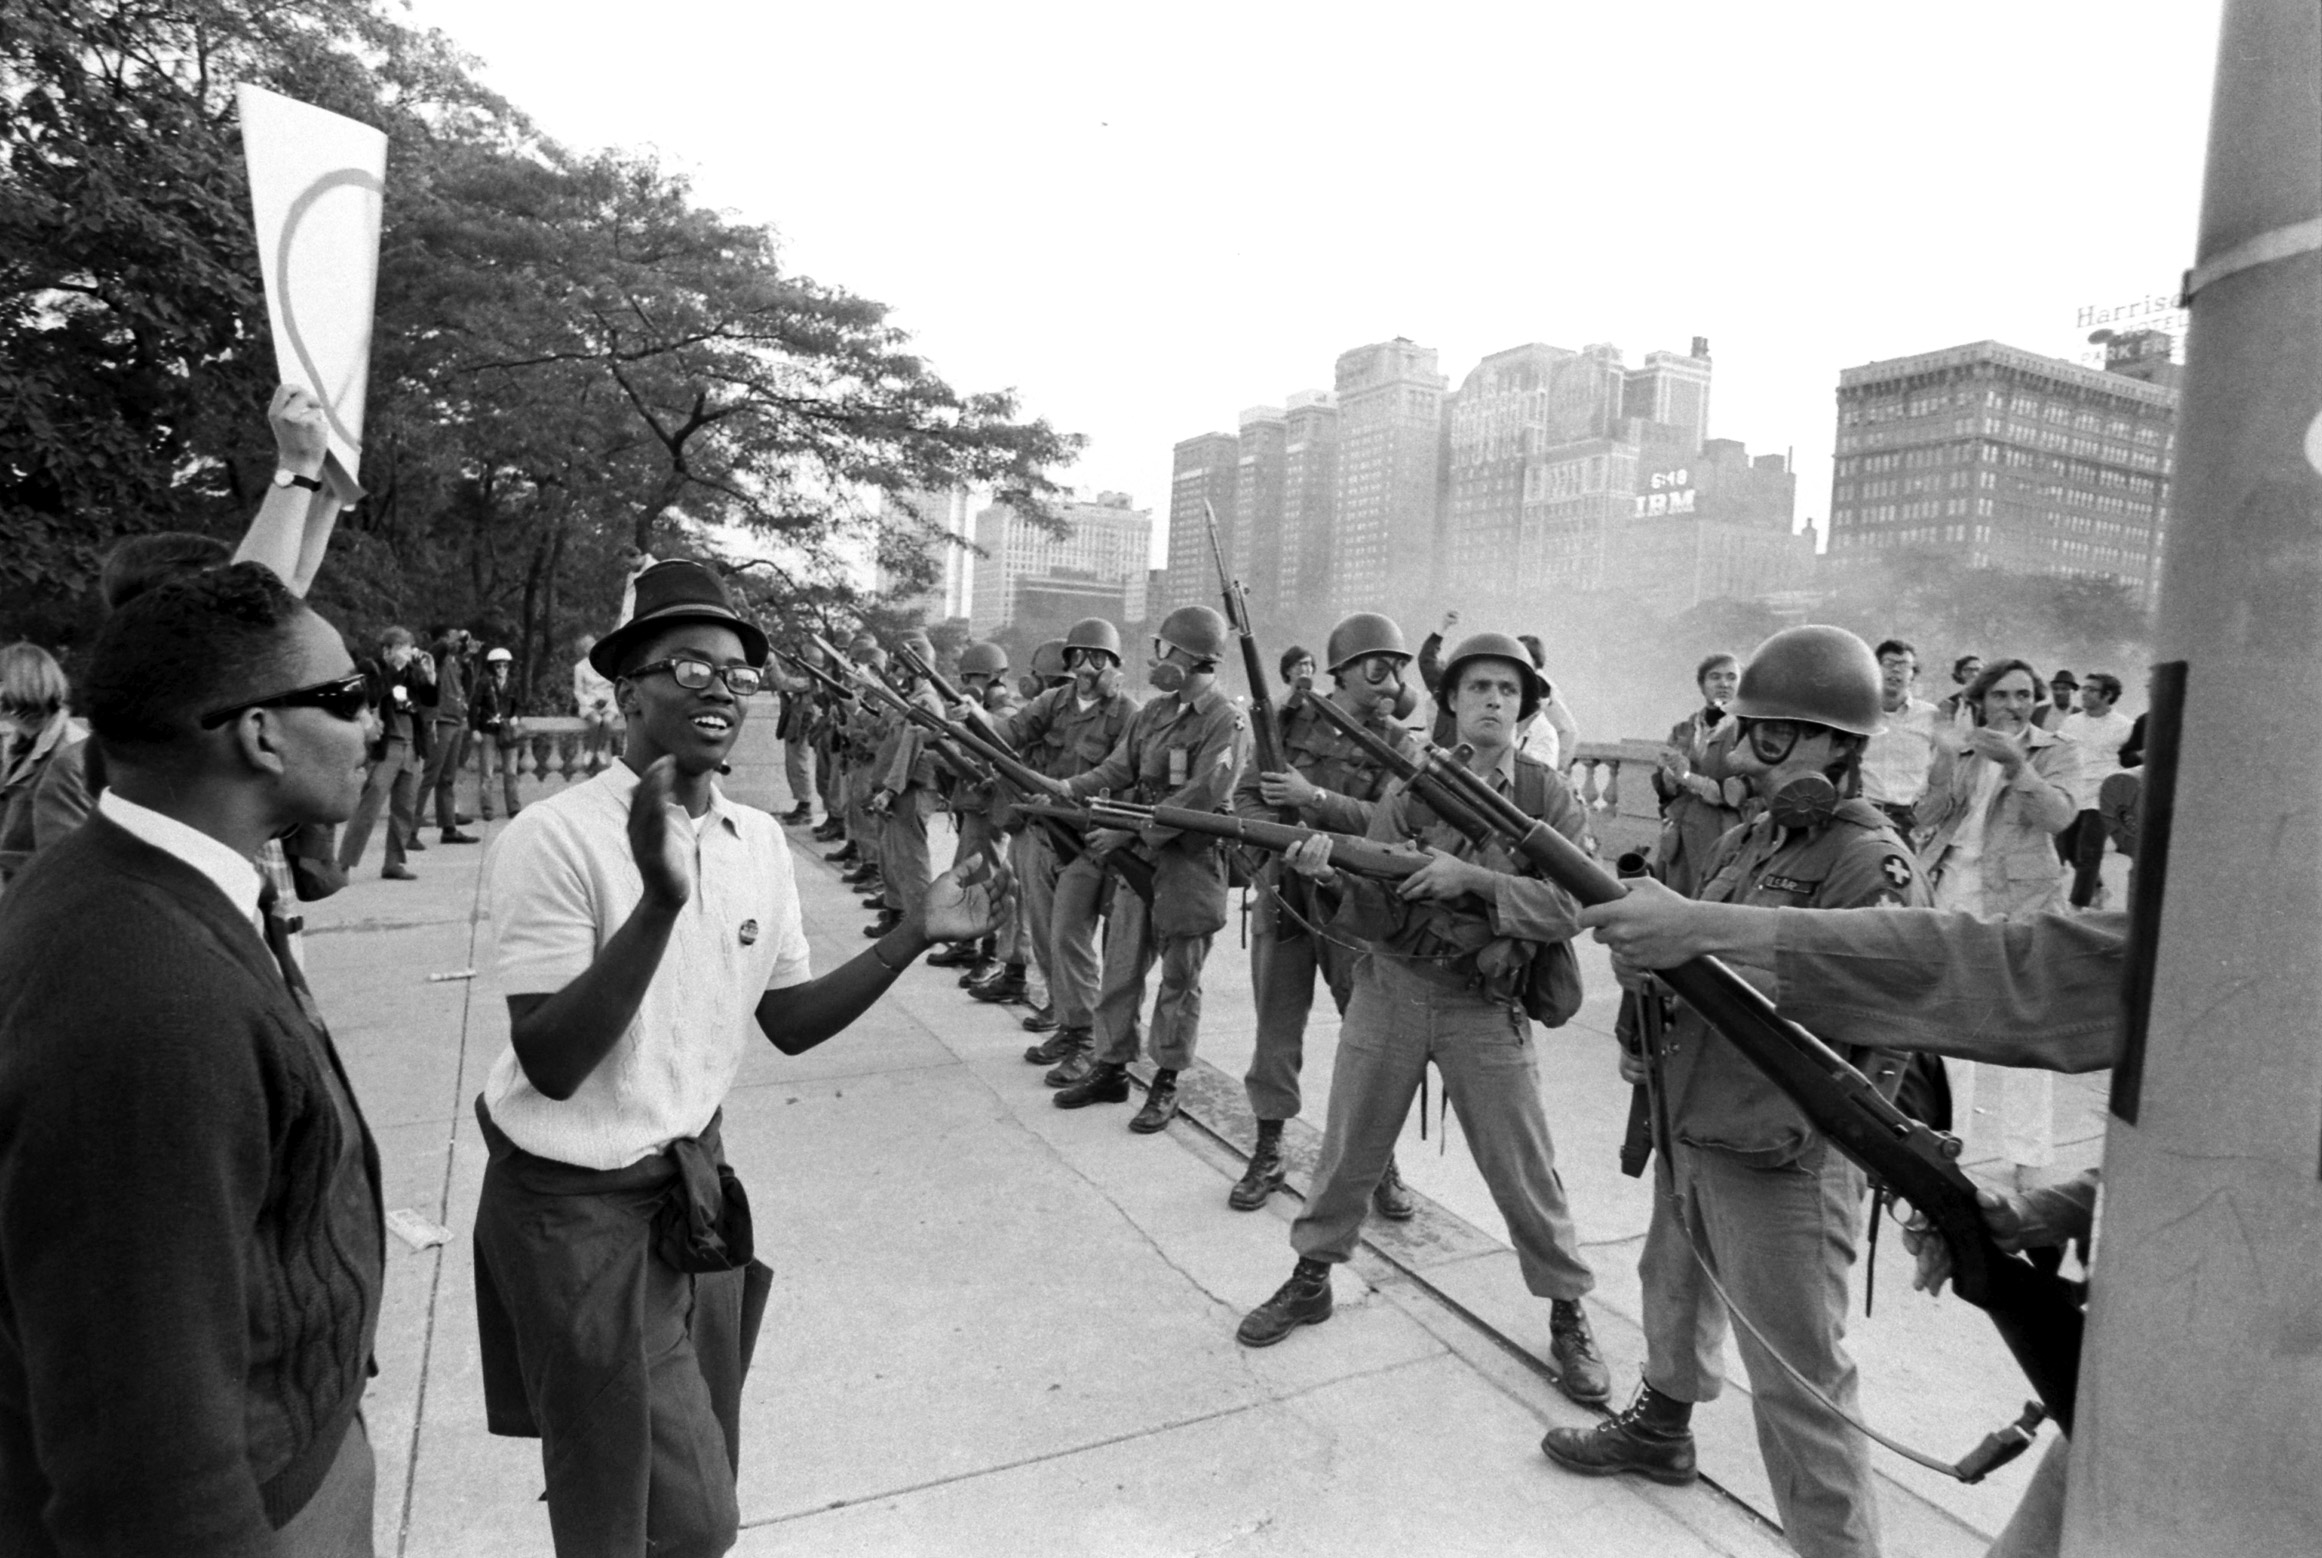 Protests at the Democratic Convention in Chicago, July 1968.